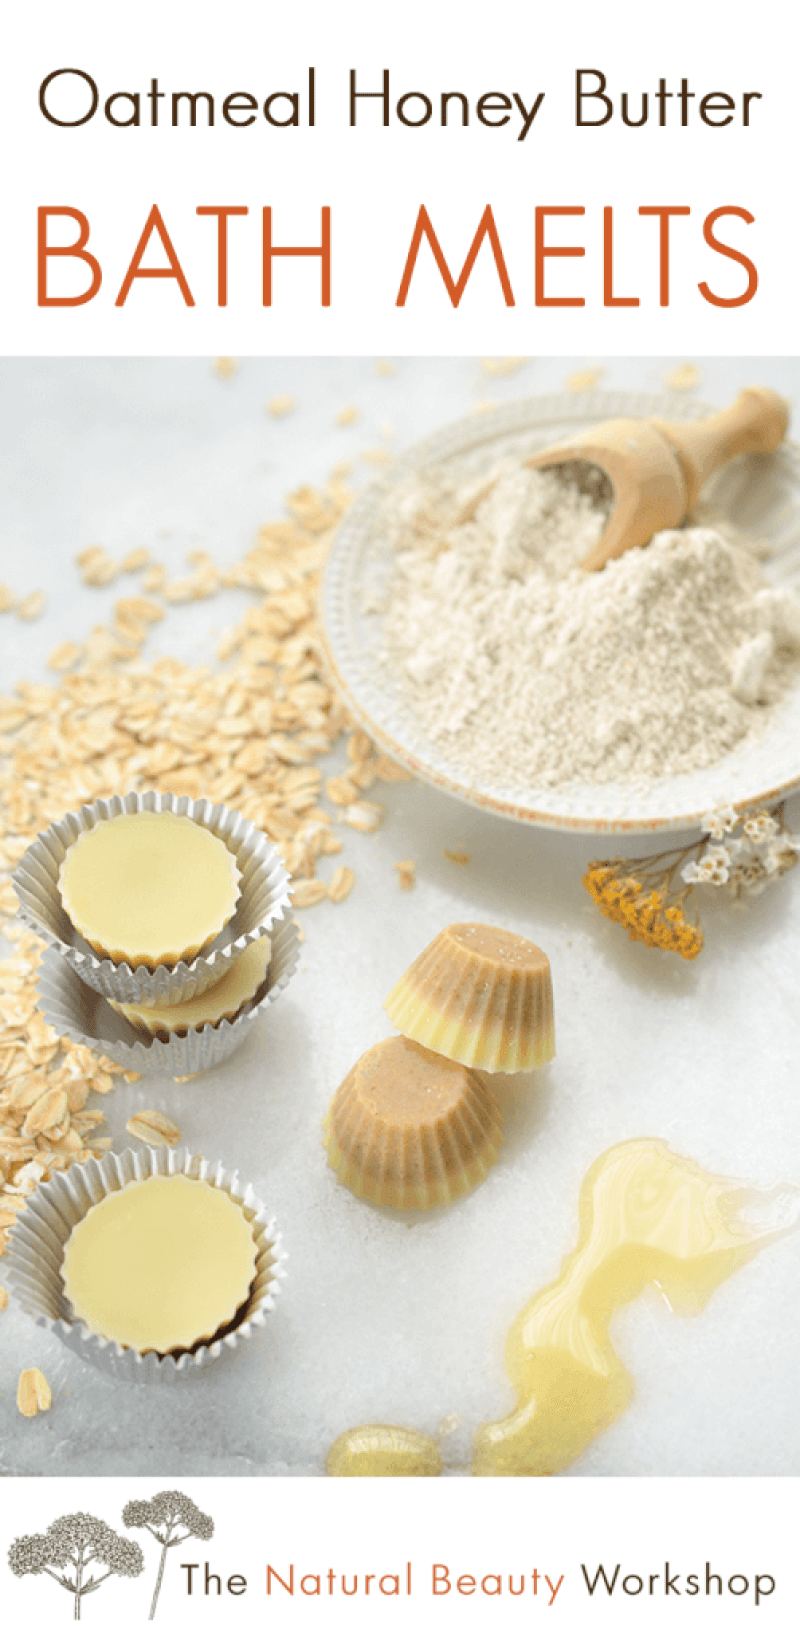 Oatmeal Honey Butter Bath Melts - Luscious fat bombs for the tub, made with soothing oat flour and a moisturizing blend of cocoa butter and virgin coconut oil